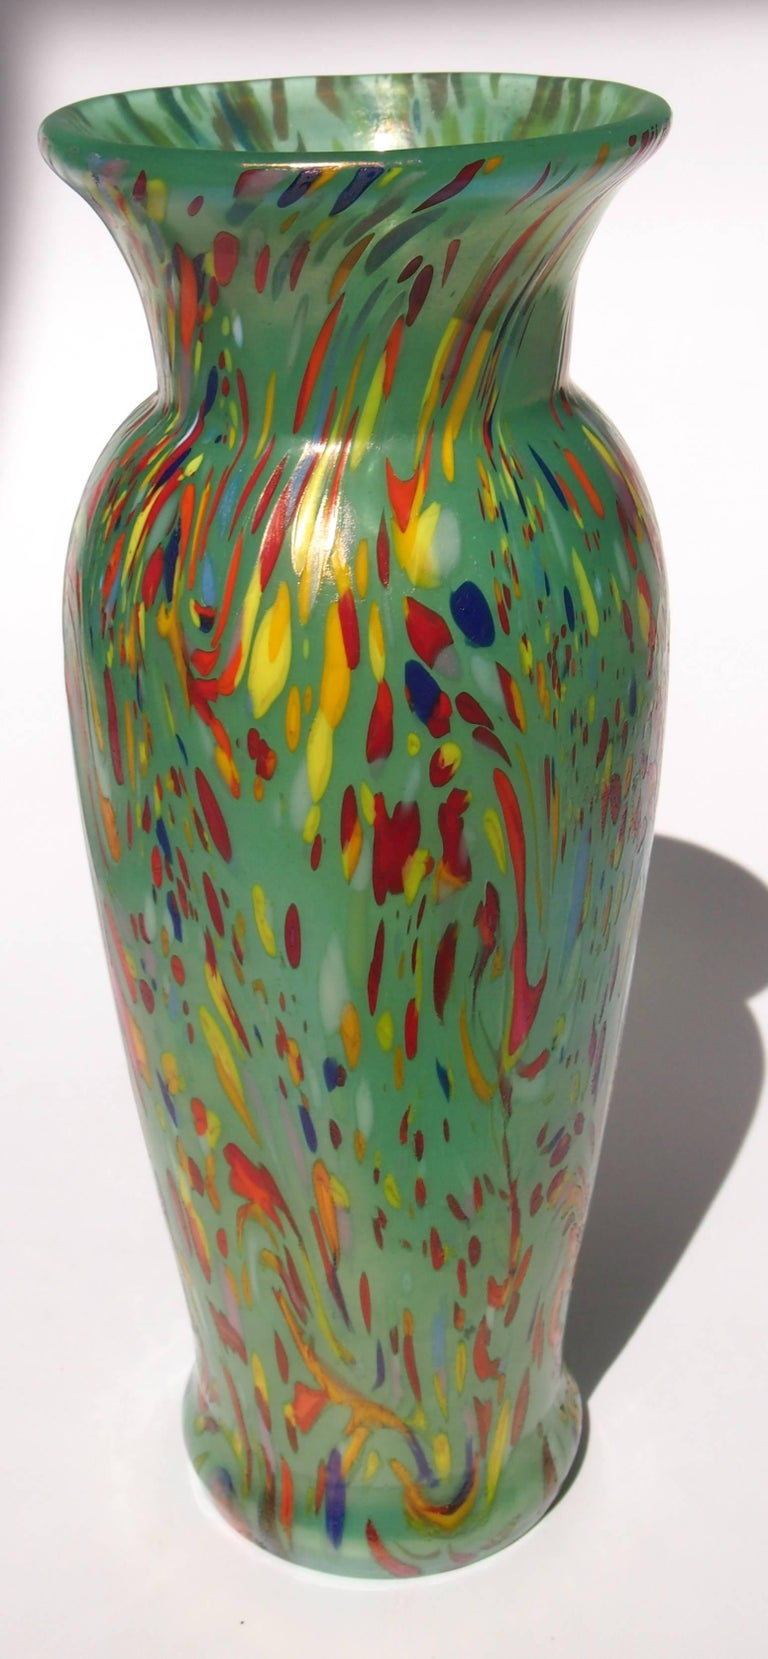 Loetz art deco green speckled ausfhrung 237 vase at 1stdibs one of the most fun and popular loetz patterns ausfhrung 237 speckled colors on jade reviewsmspy